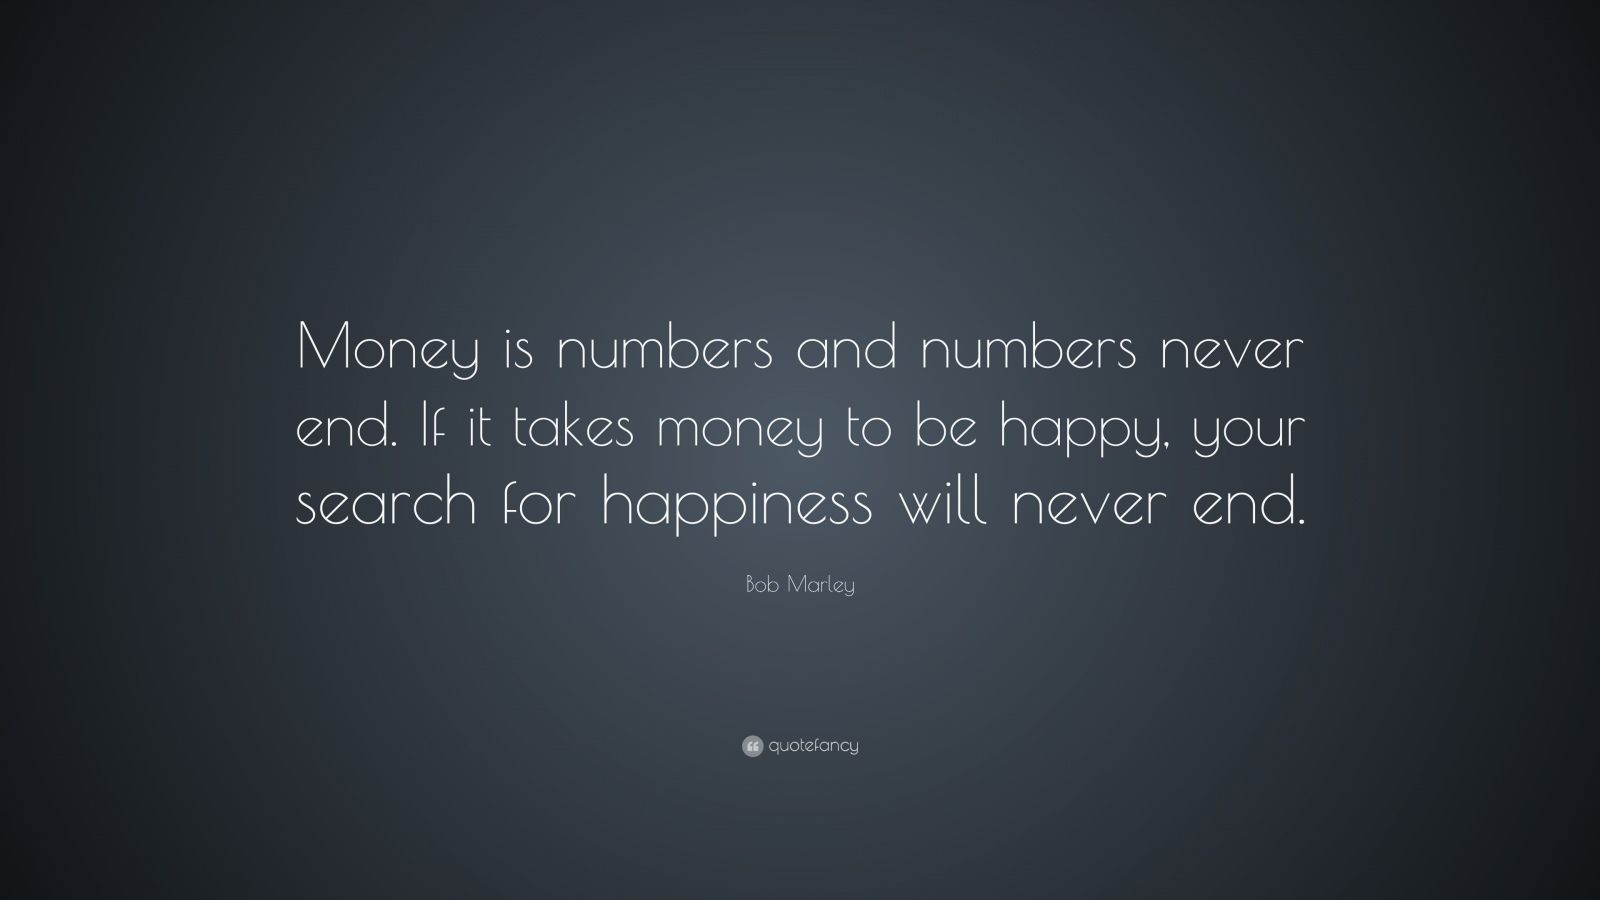 money and happiness it never works together essay If the bank managers did not care about the customers money, the fdic insured all the stolen money, the police were not unhappy because of the robbery, and the robber was extremely happy because he could move to the caribbean and never work again, then robbing the bank would be a right action.